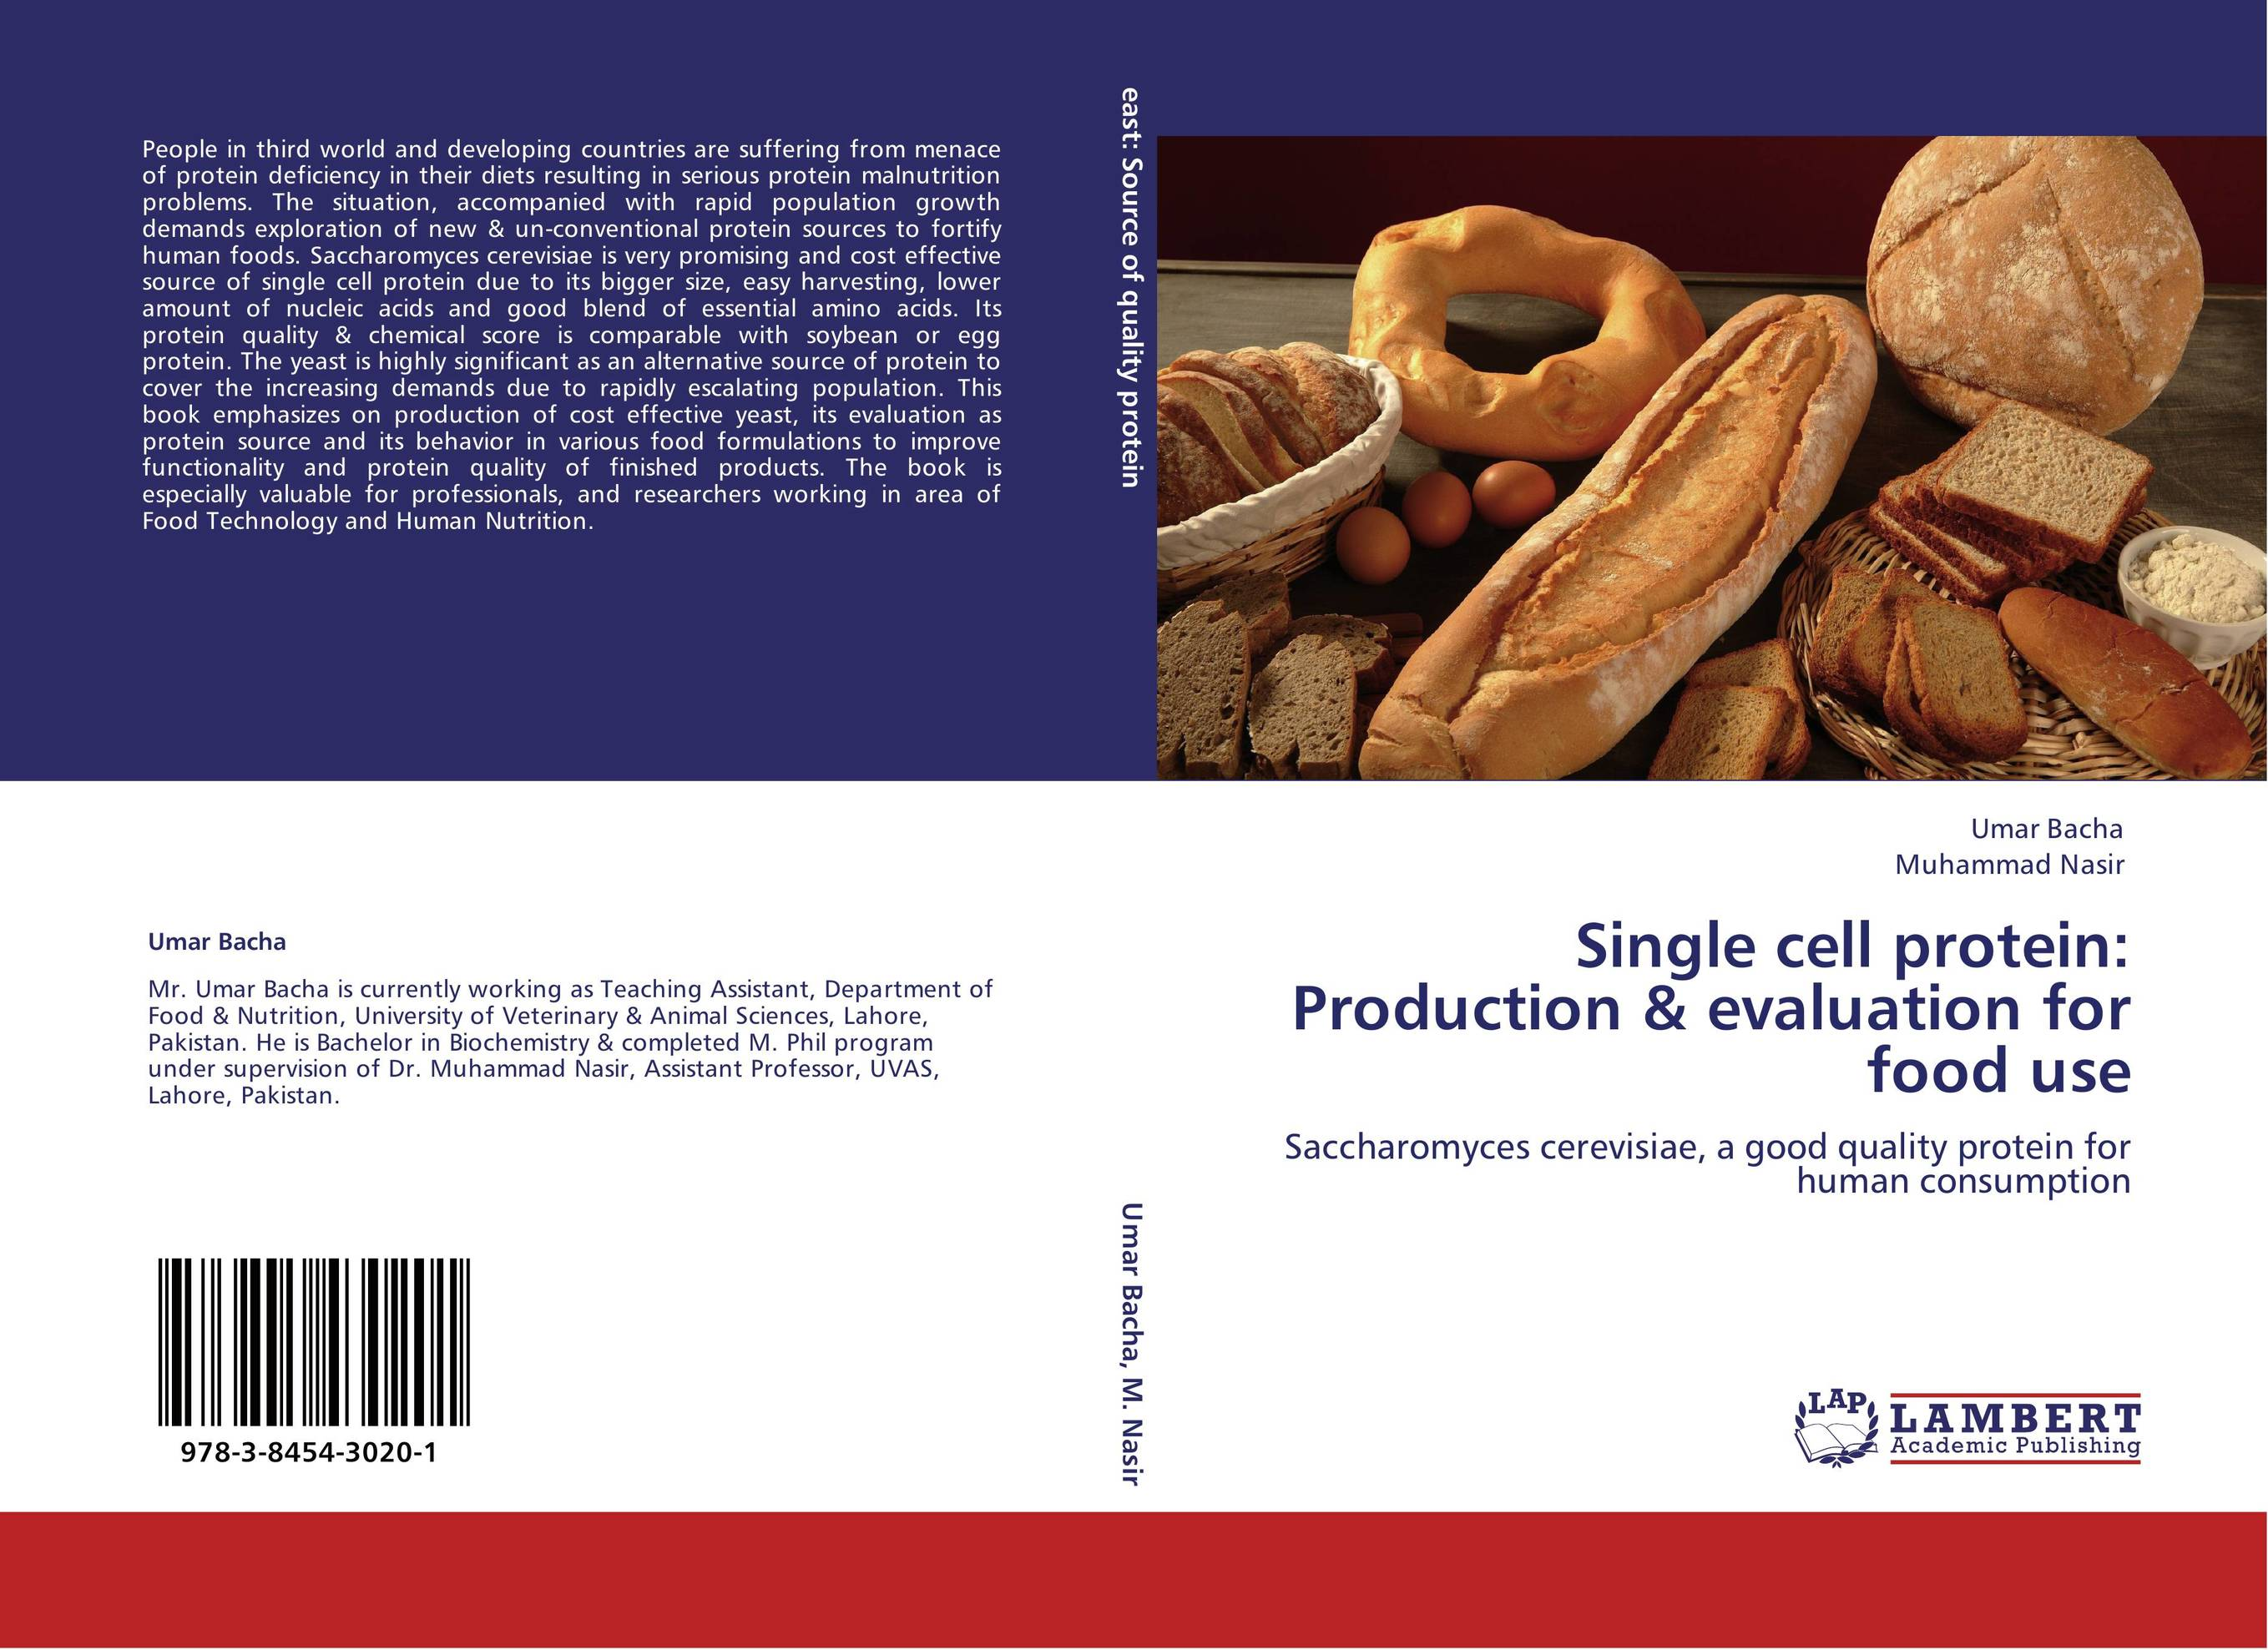 production of single cell protein biology essay The production of single cell protein can be done by using waste materials as the substrate, specifically agricultural wastes such as wood shavings, sawdust, corn cobs, and many others examples of other waste material substrates are food processing wastes.